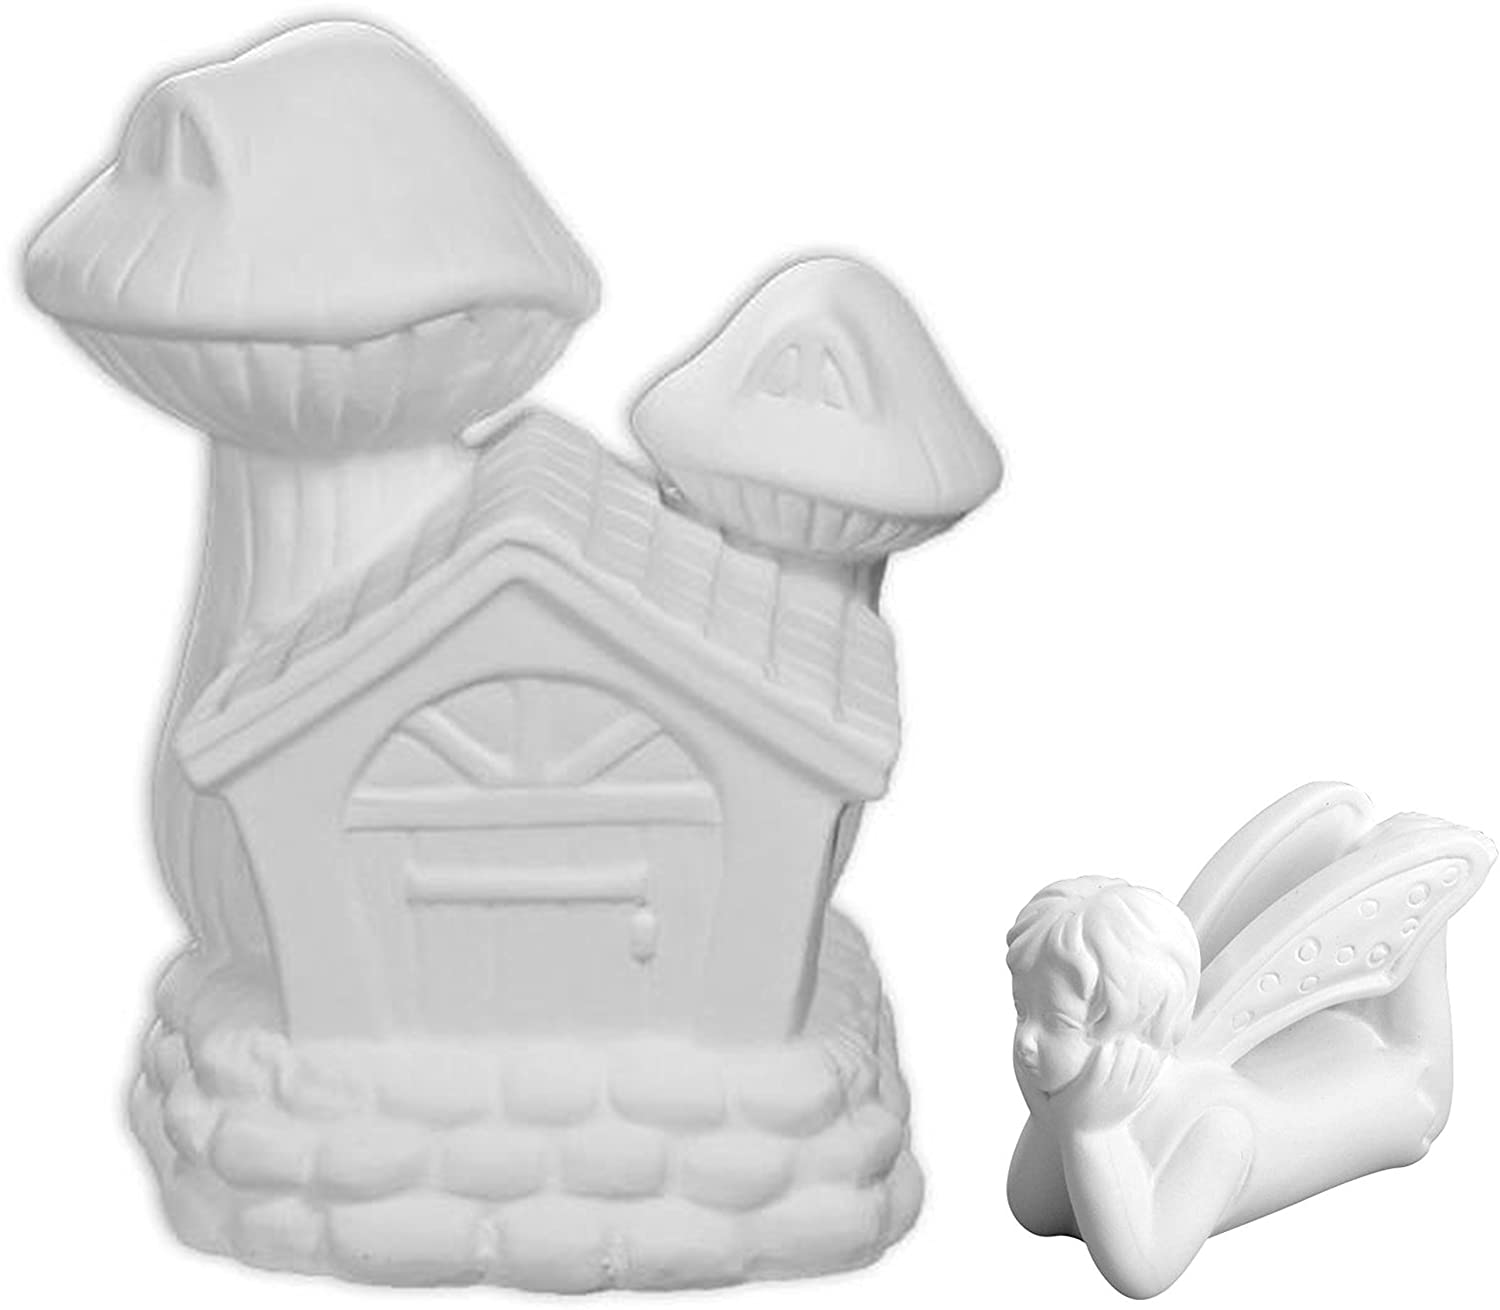 Little Penelope The Pixie Fairy and Her Fairy House - Paint Your Own Ceramic Keepsake New Hampshire Craftworks